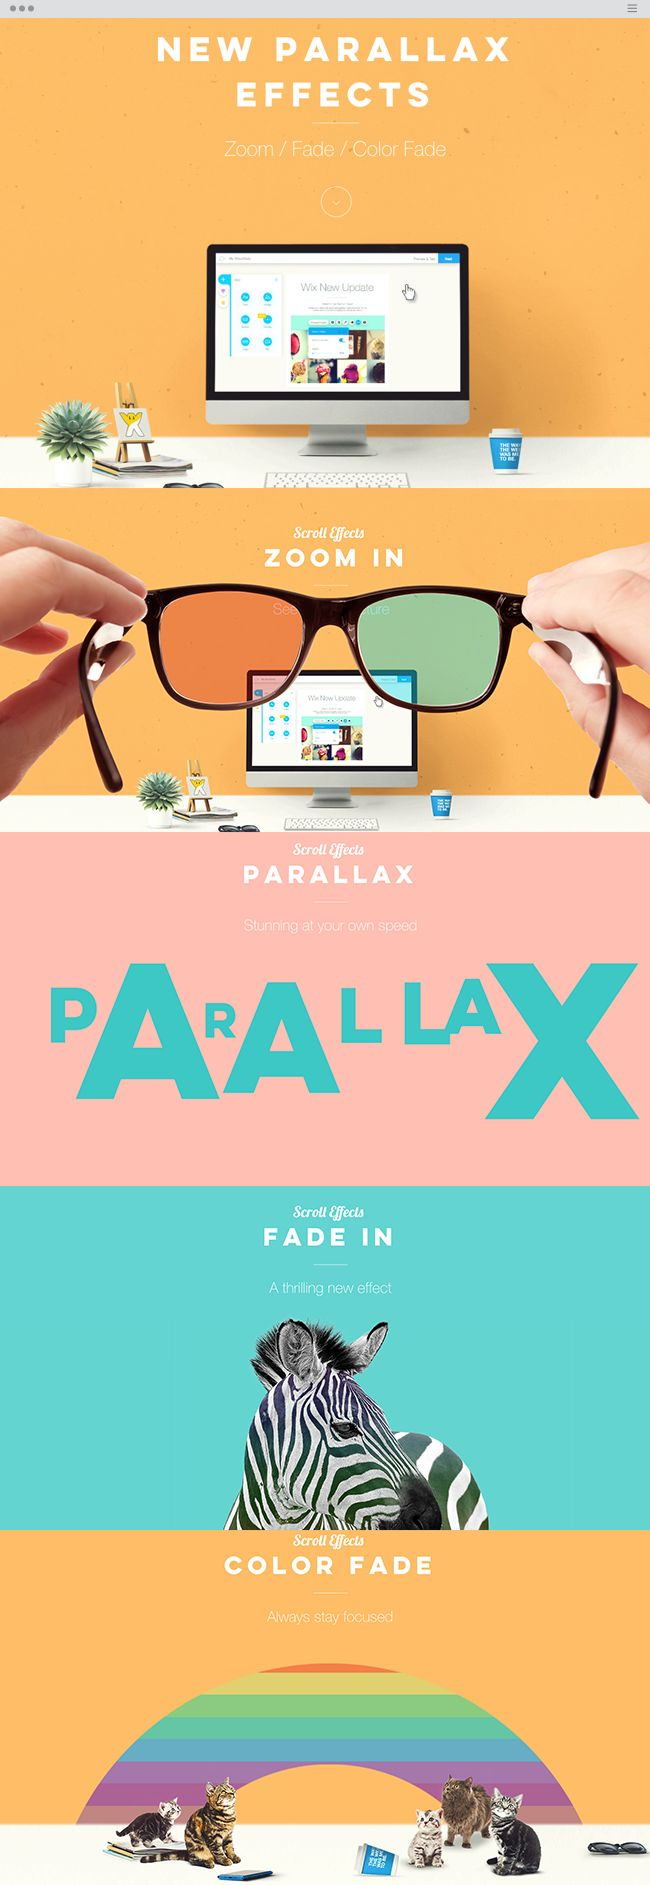 Wix New Features | New Parallax Effects